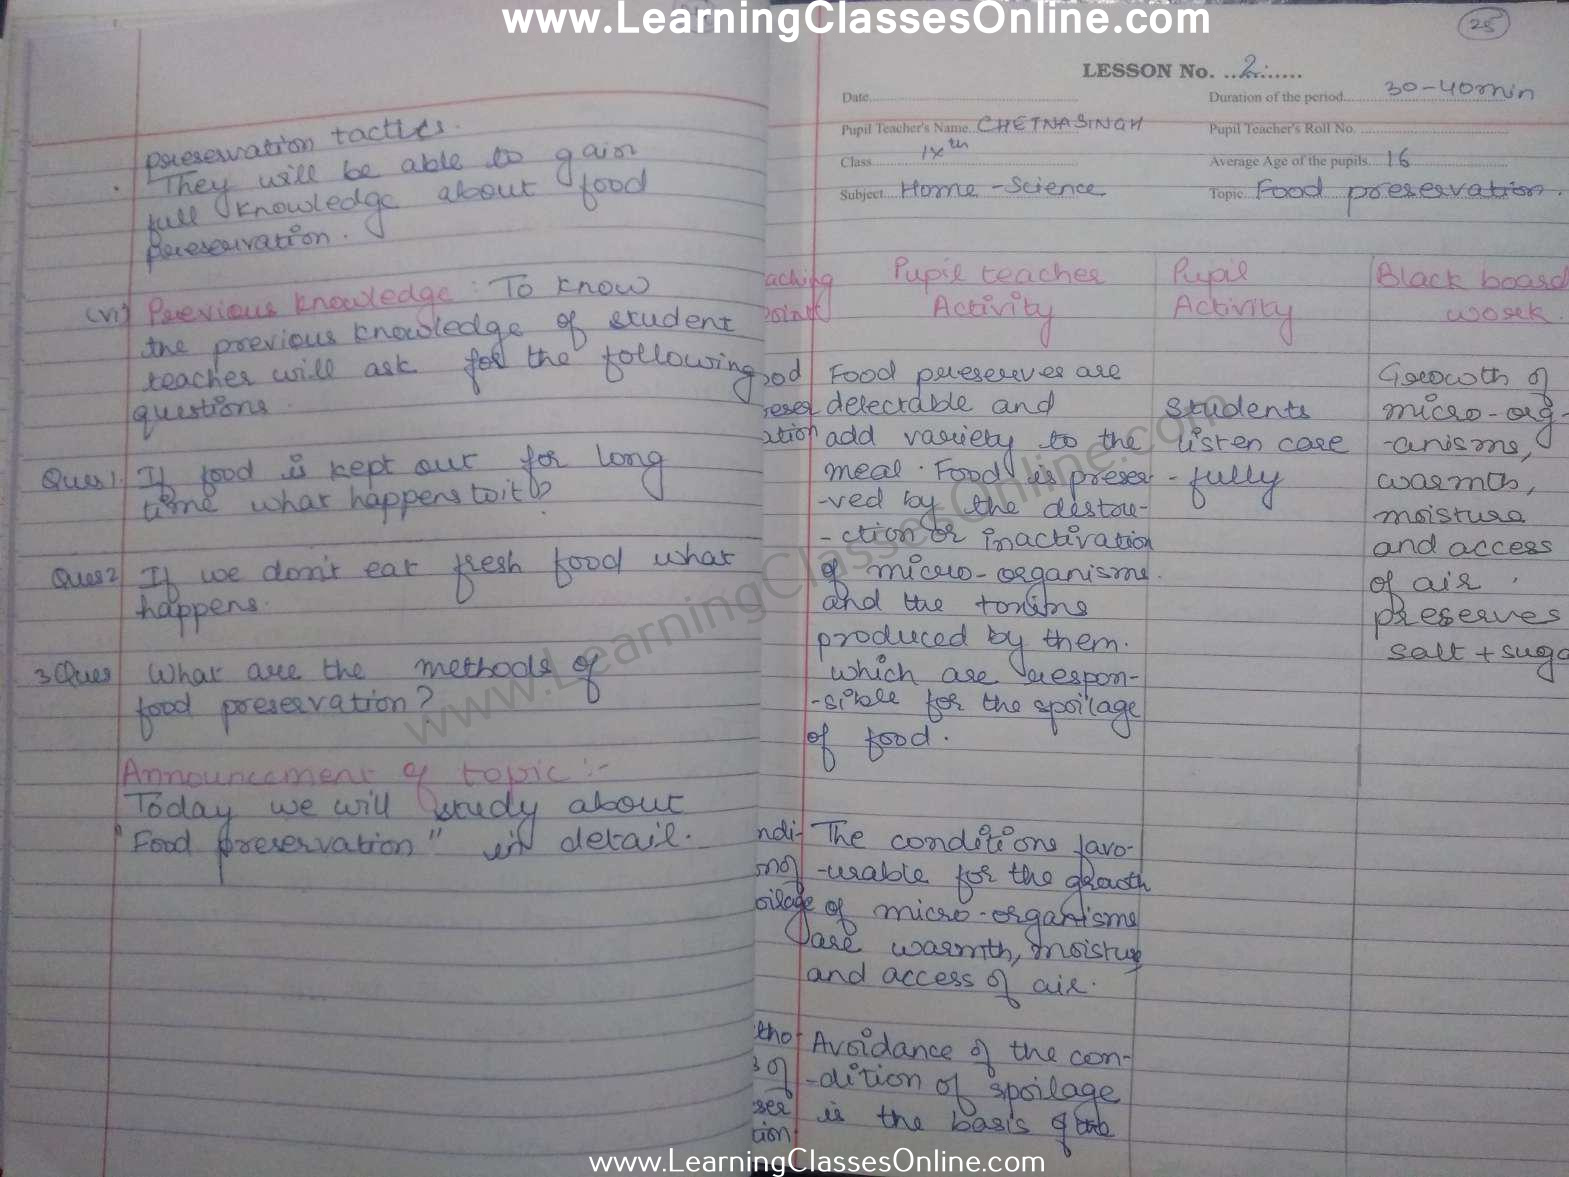 class 9th food preservation home science lesson plan